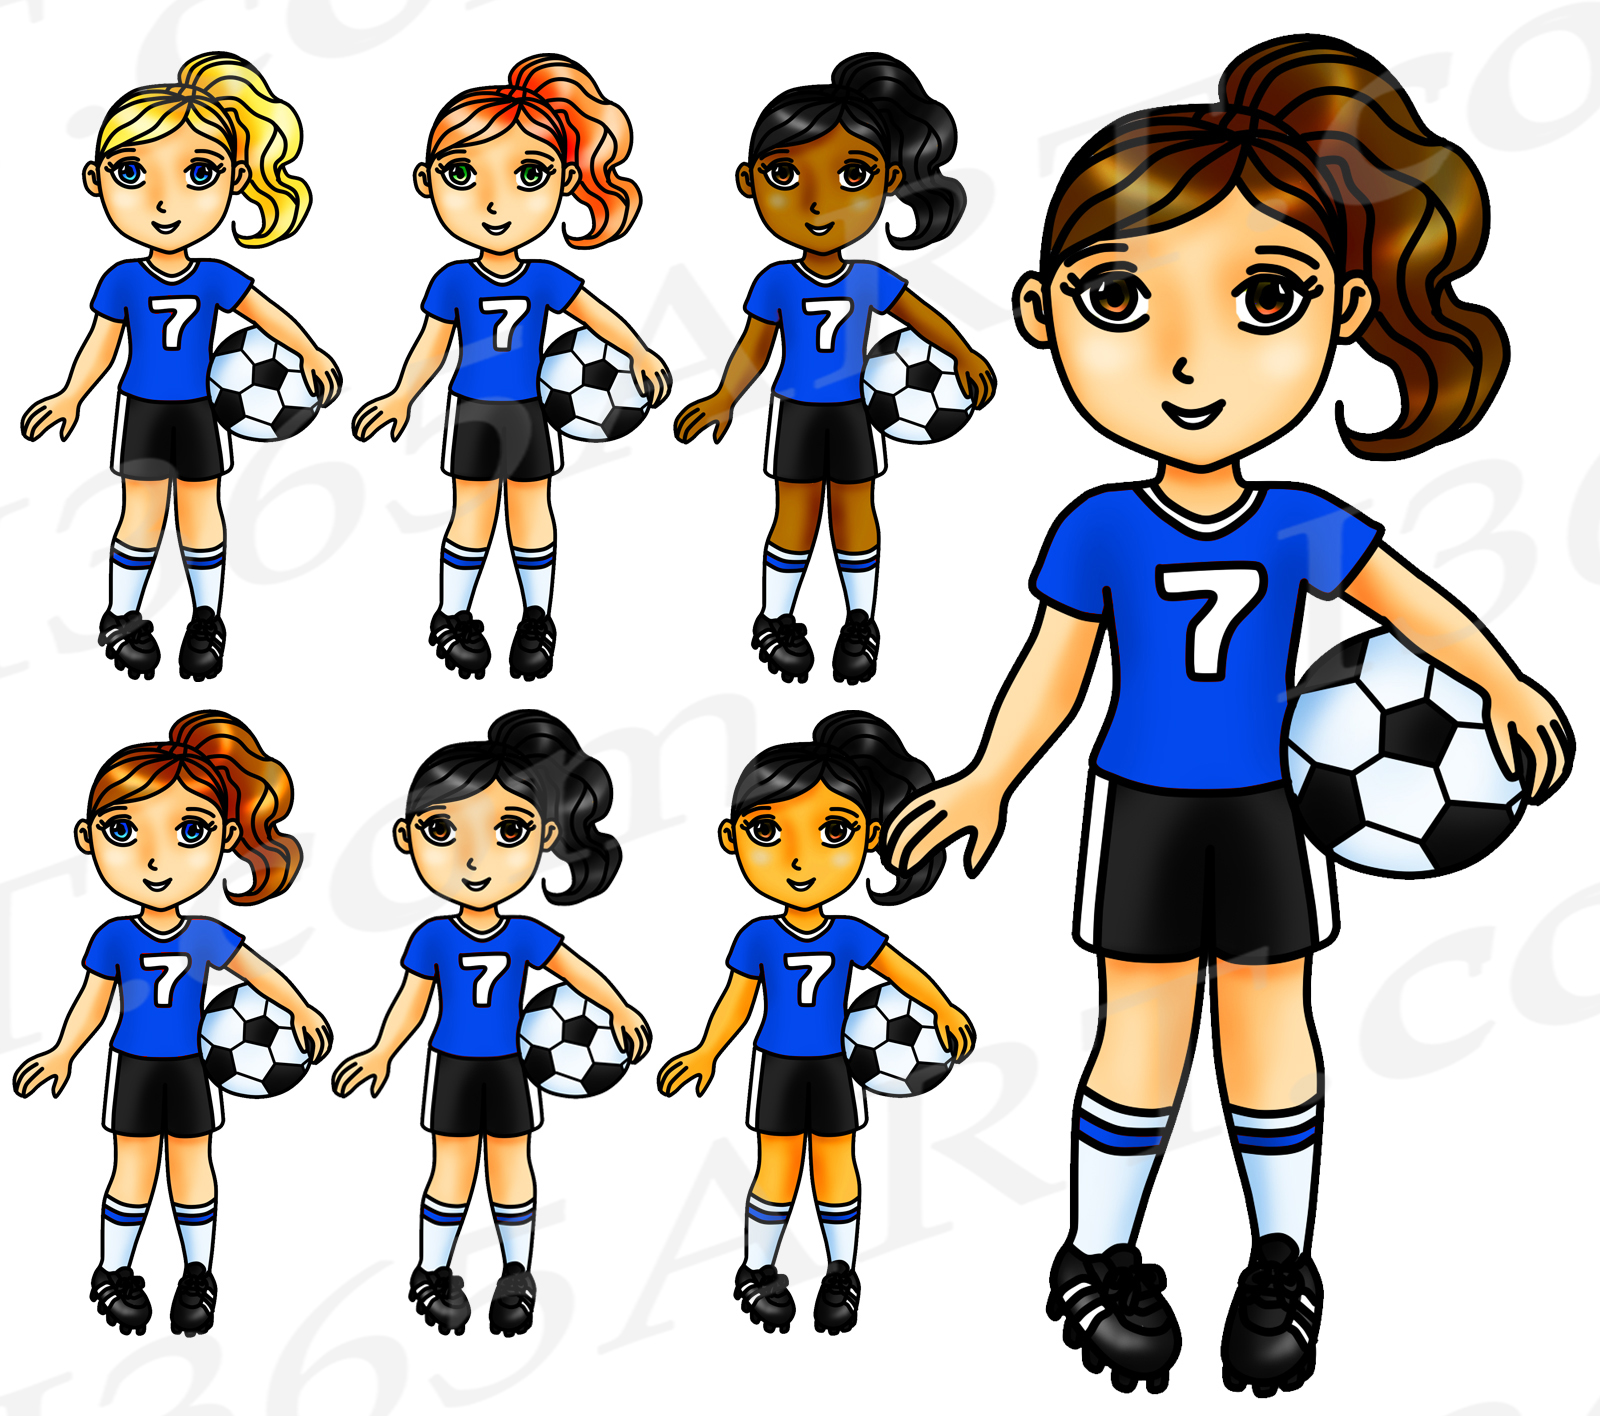 Soccer Clipart, Blue Girl Clipart, Sports Clip Art, Pink Team, World Cup,  Olympics, Soccer Team, Planner Stickers, African American.